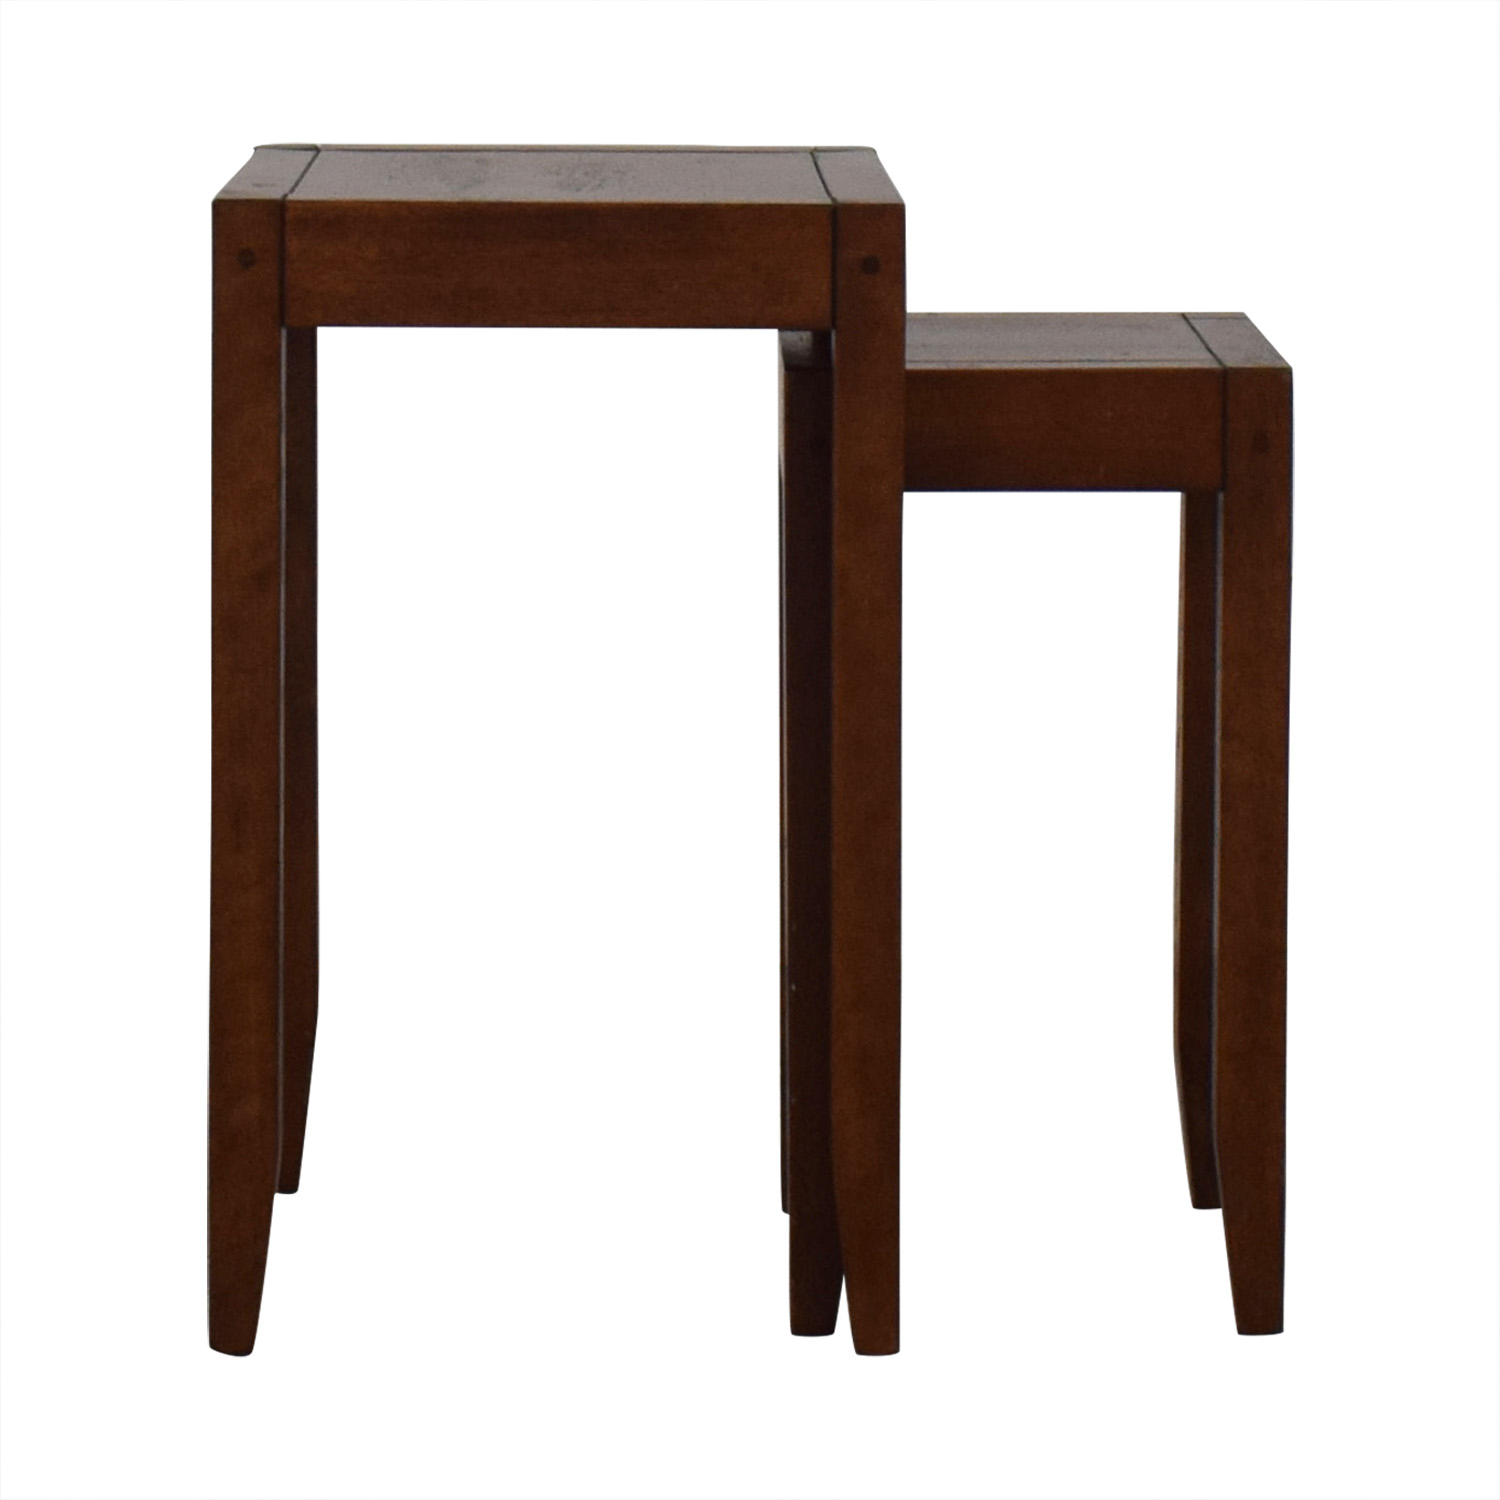 Nesting Accent Tables nj